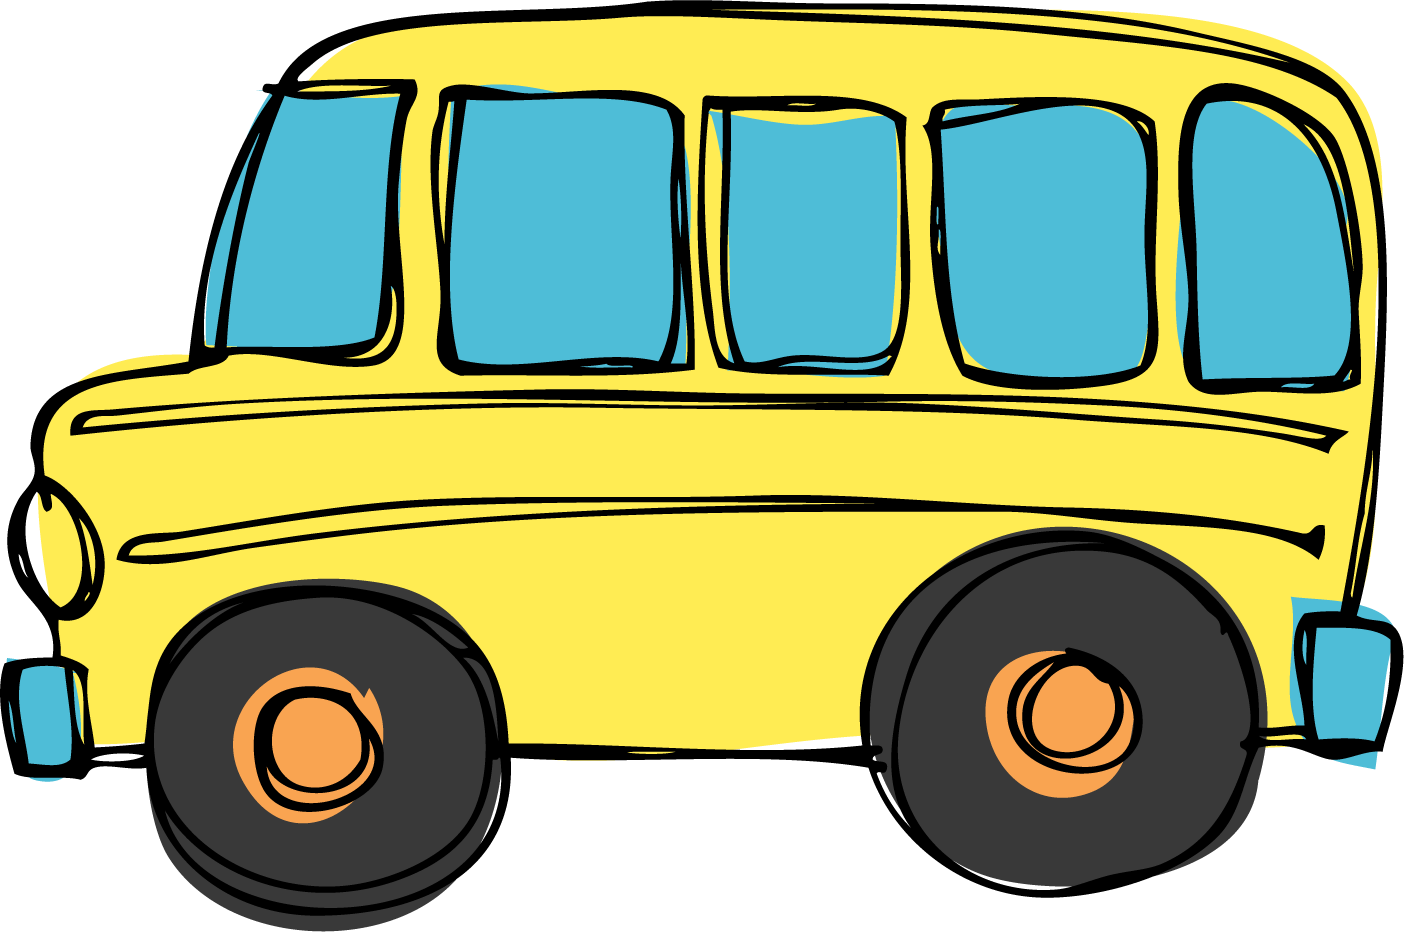 1404x932 Vehicle Clipart Bus Ride